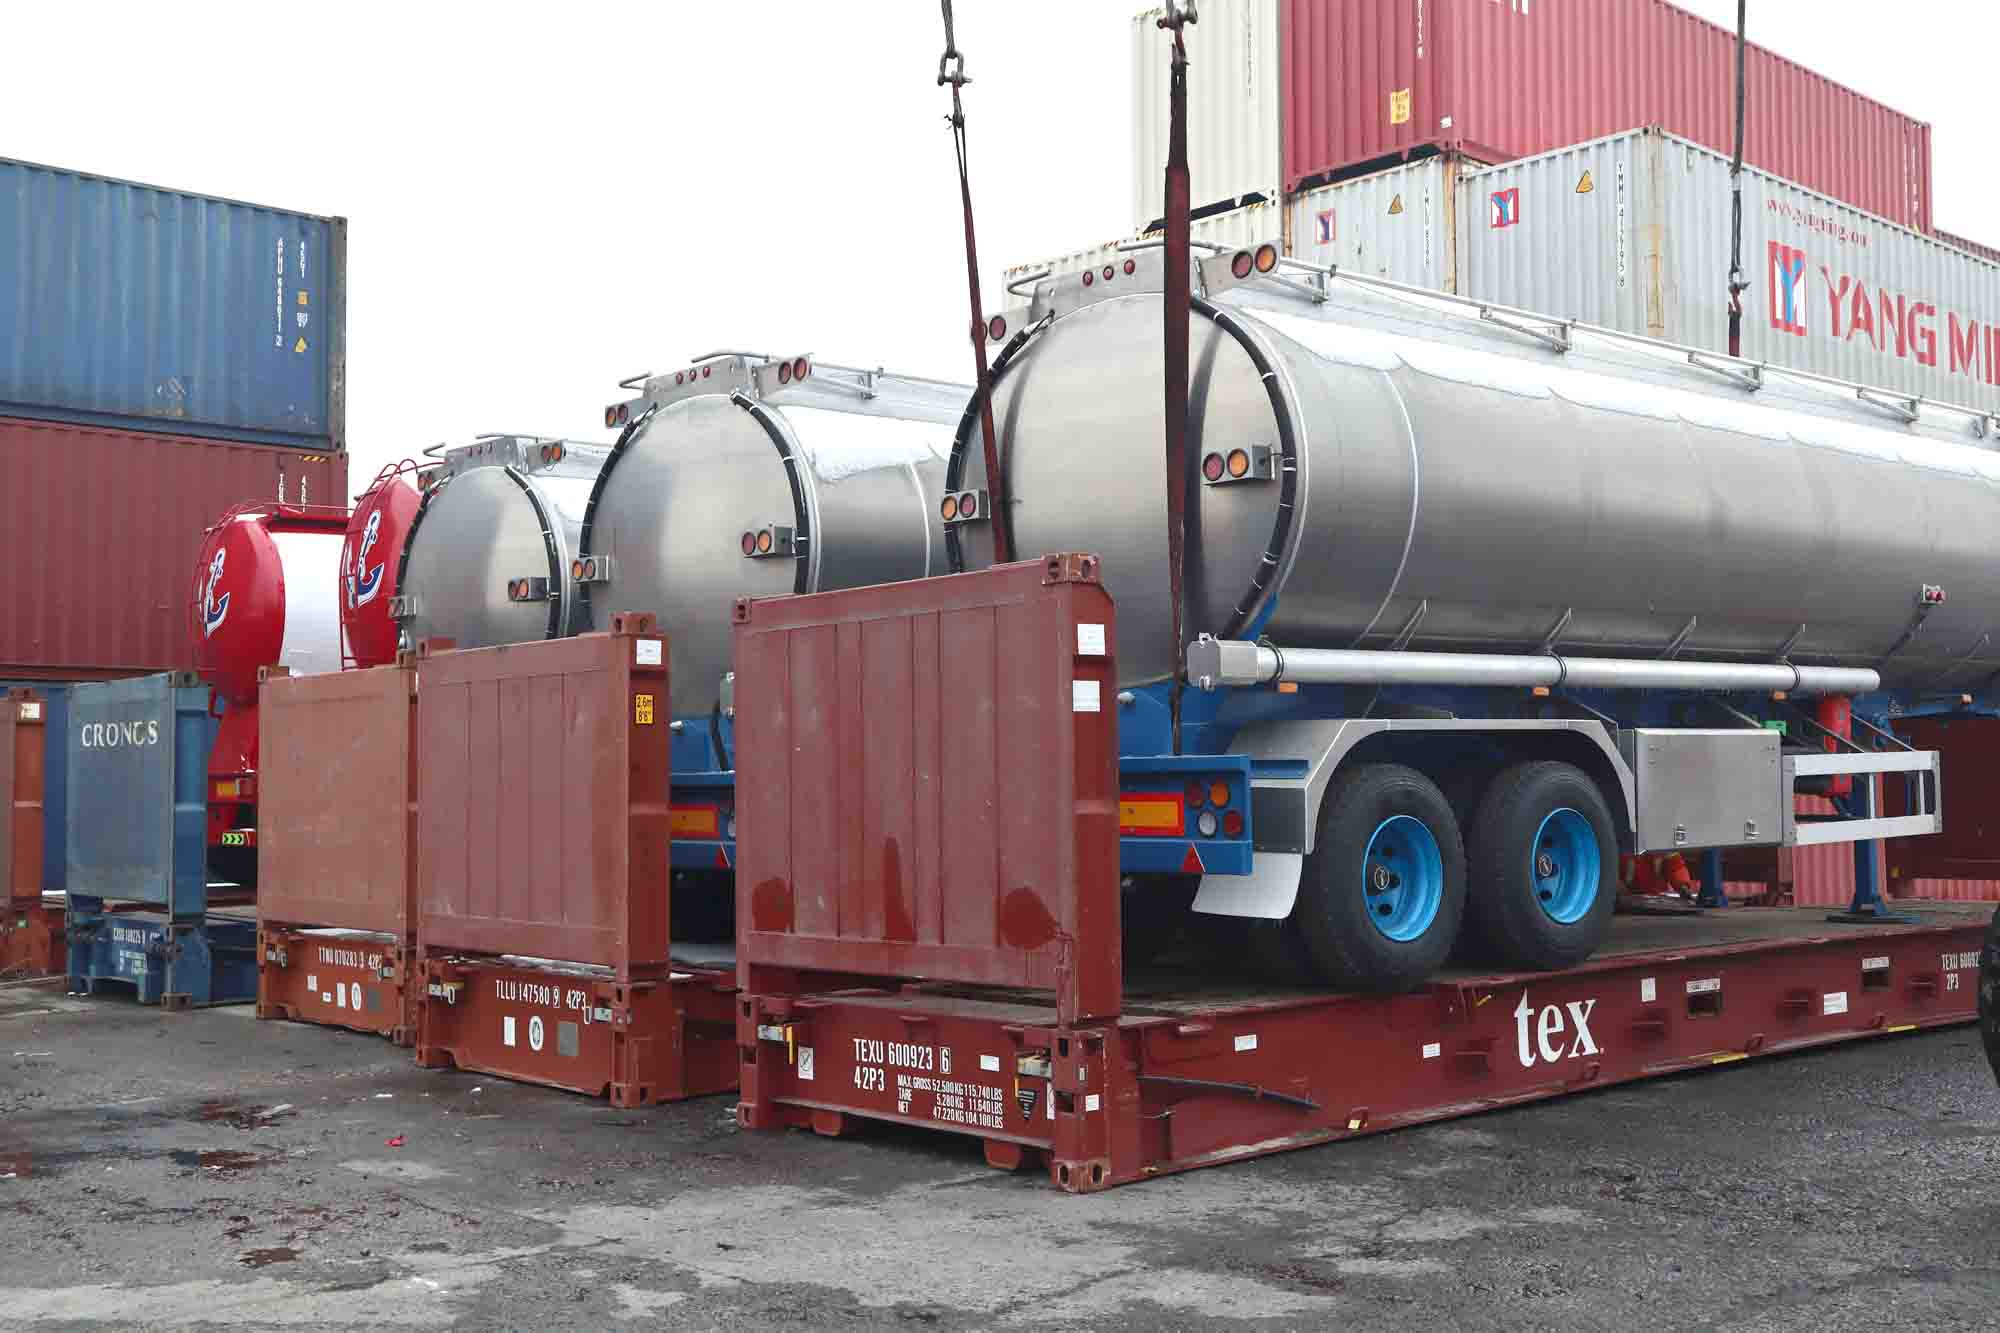 Flat rack container transporting | Flat rack international shipping | flat rack shipping | FR transport